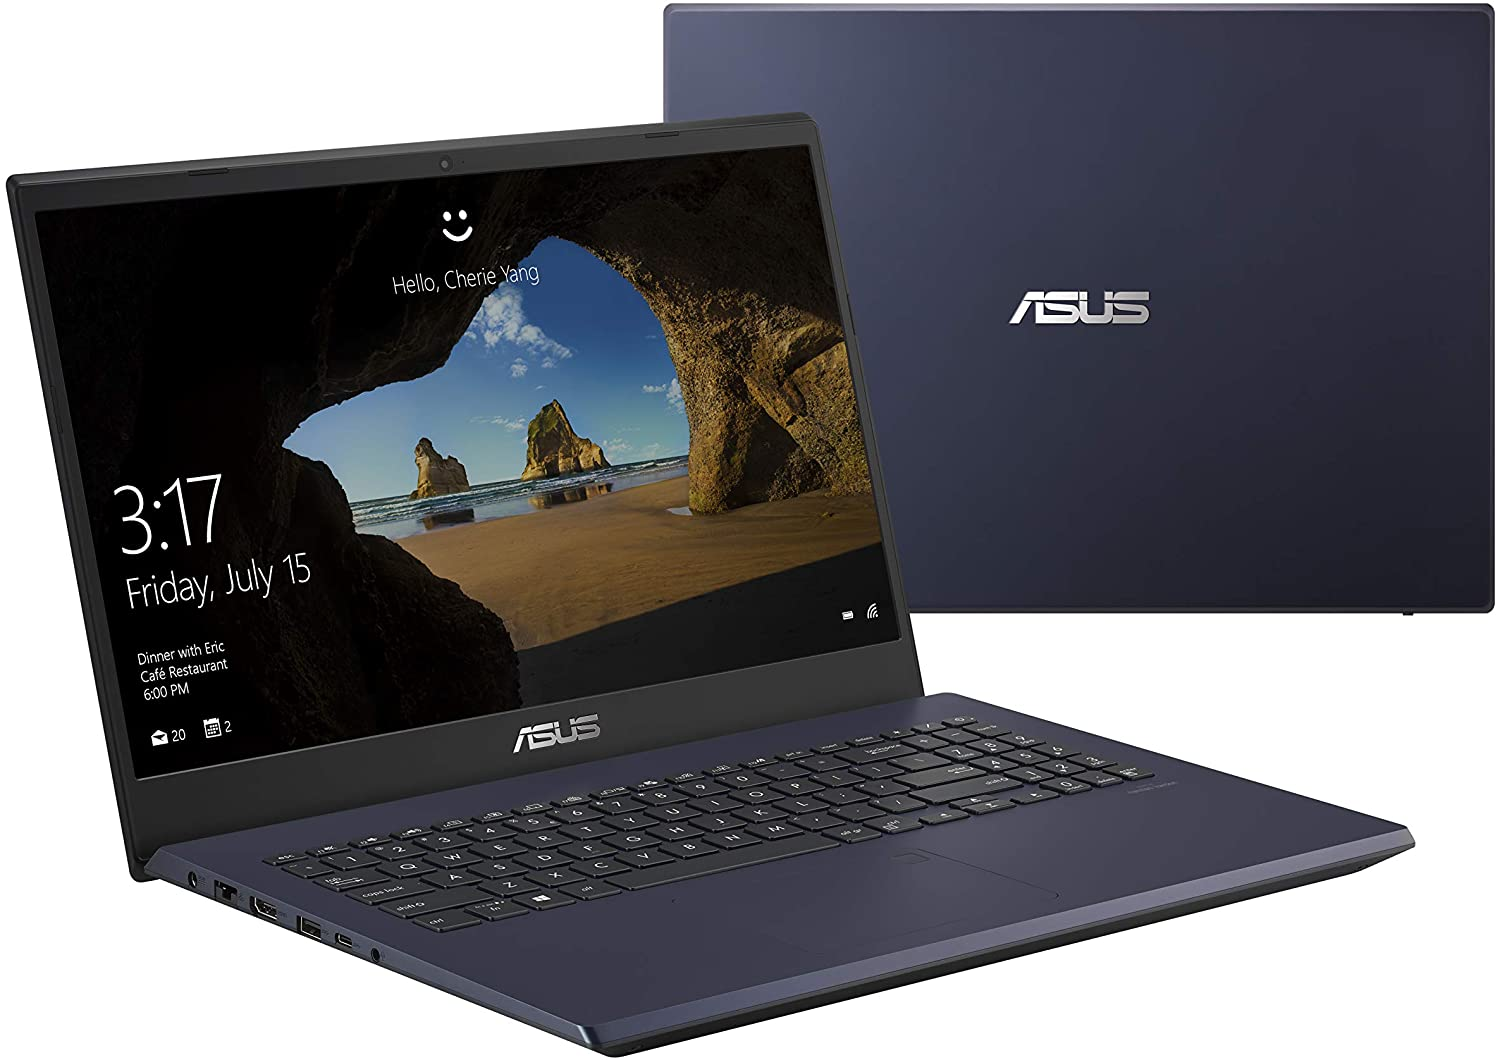 Best Laptop for Heavy Web Browsing